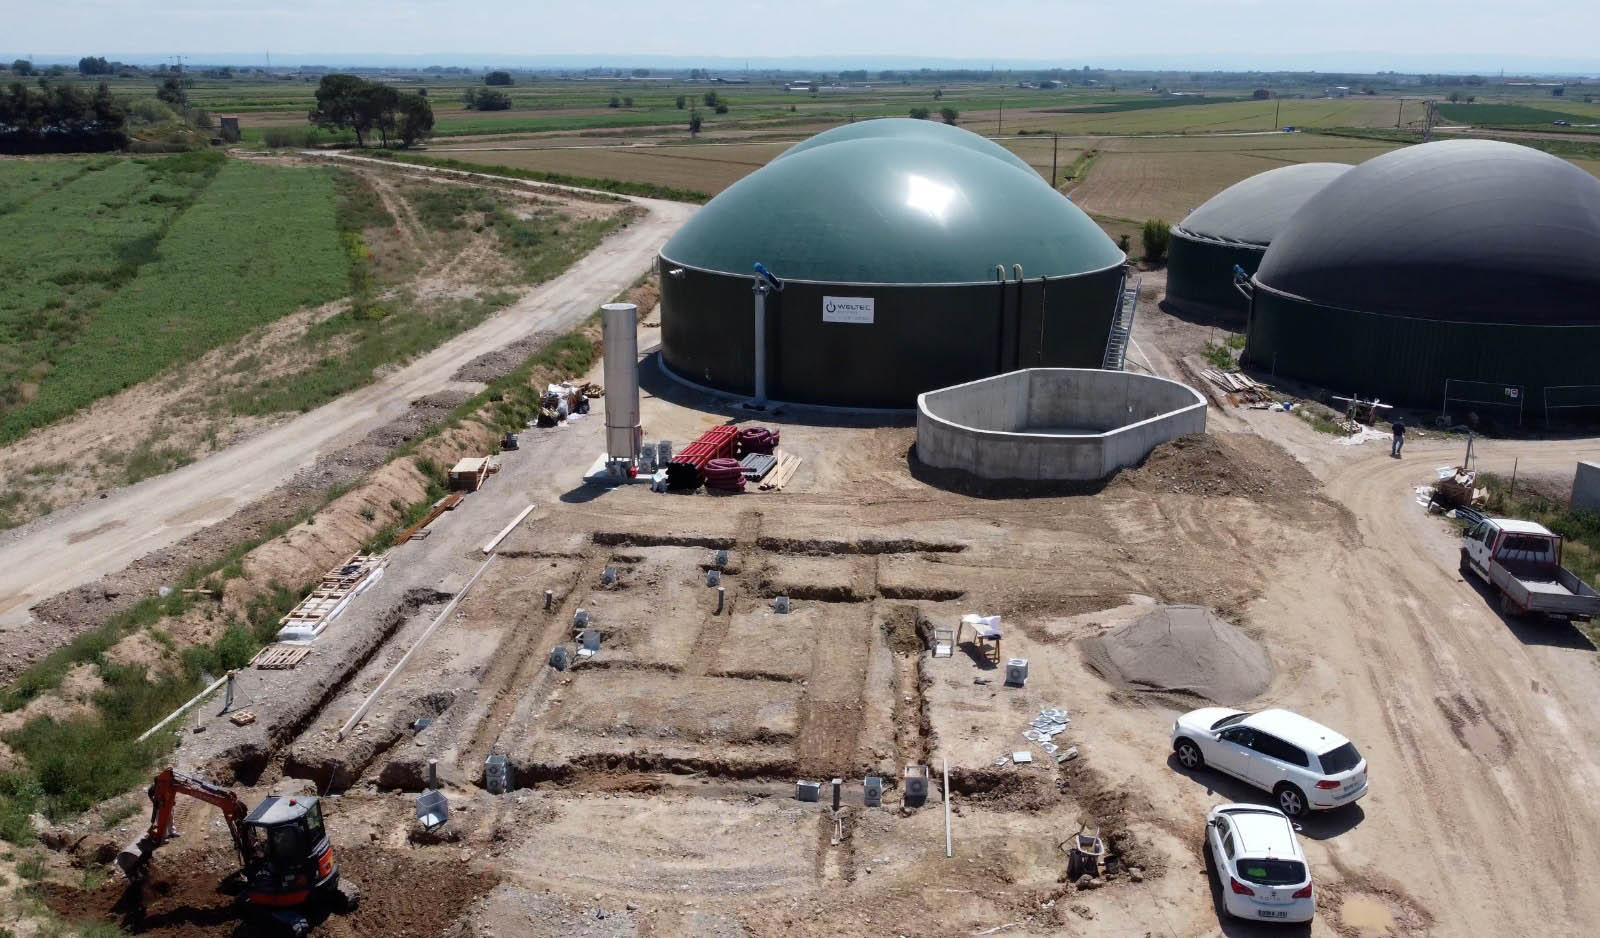 WELTEC BIOPOWER RNG Plant Cuts Carbon Emissions of Dairy Cattle Farm Long-Term Purchase Agreement Secures Use as Biofuel